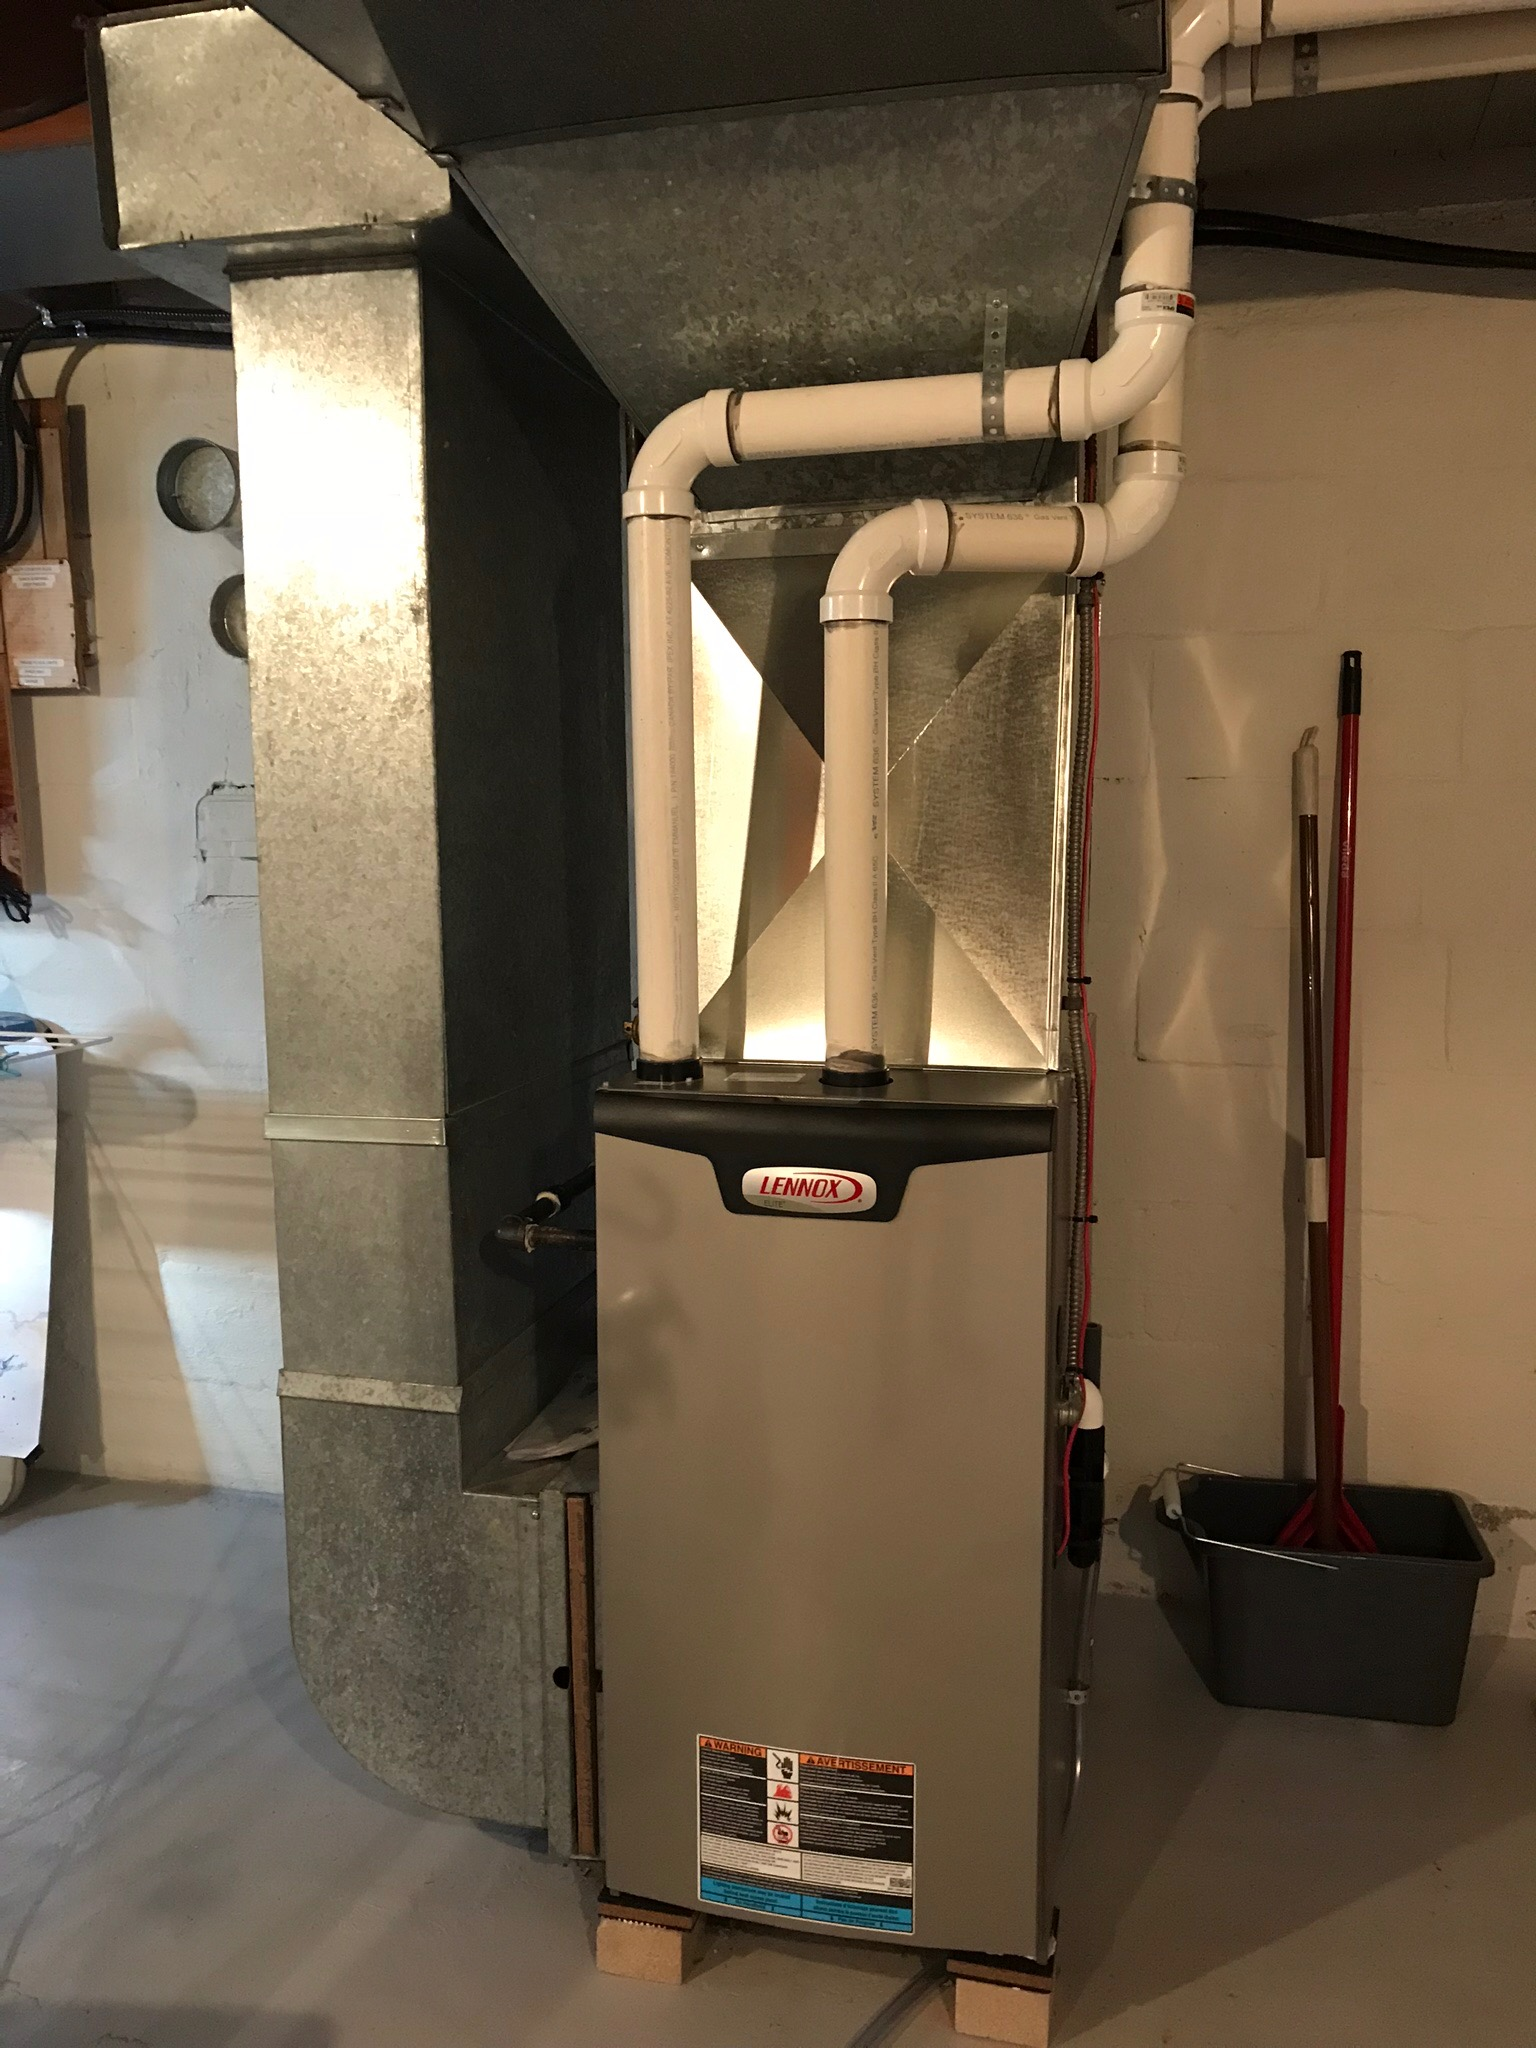 Gas Furnace - Dugard Plumbing, Heating & Cooling